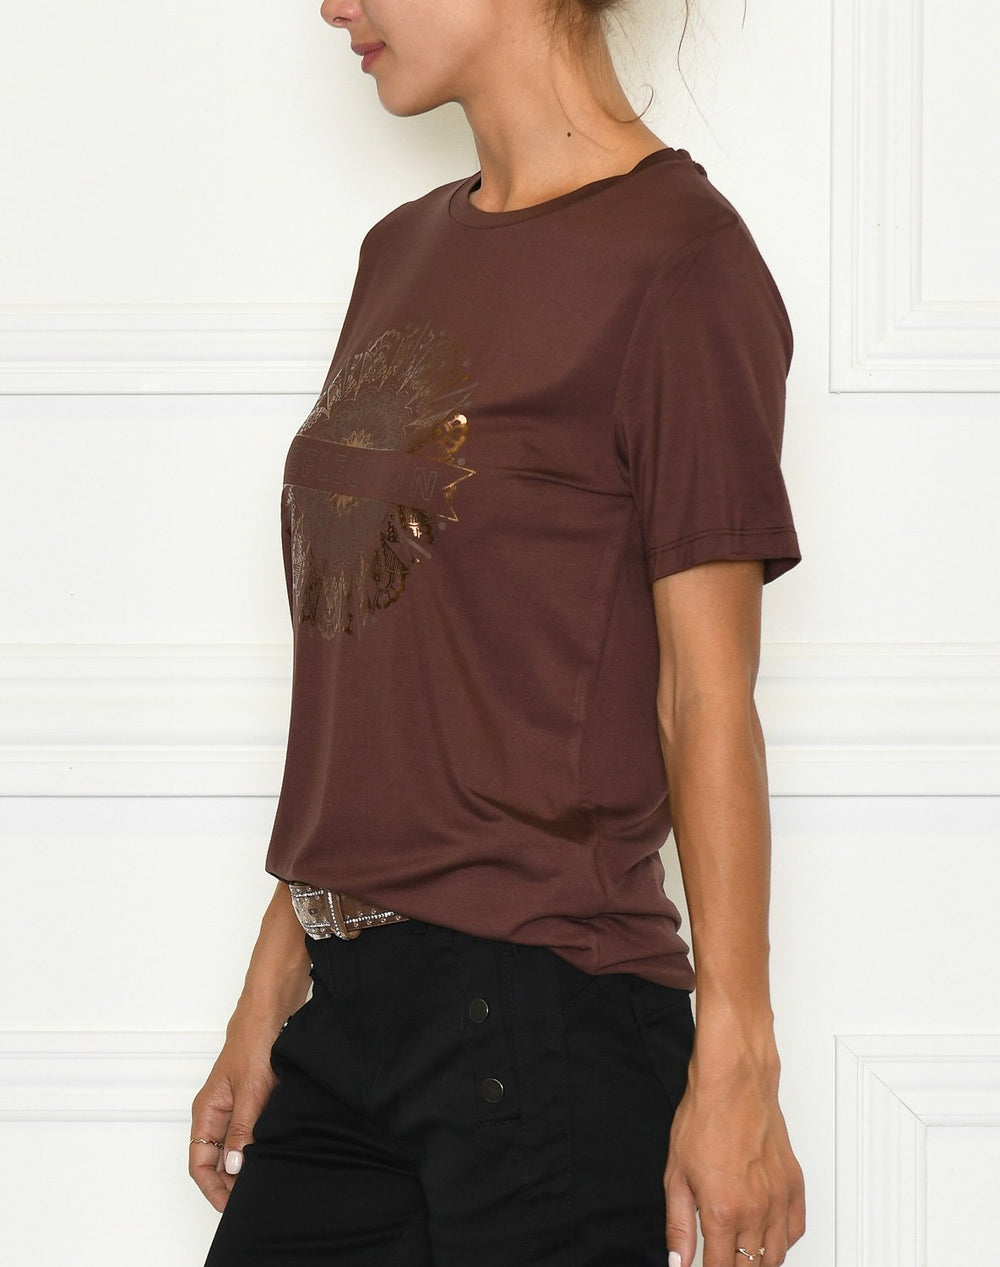 Soya Concept SC-Marica FP 11 t-shirt brown - Online-Mode